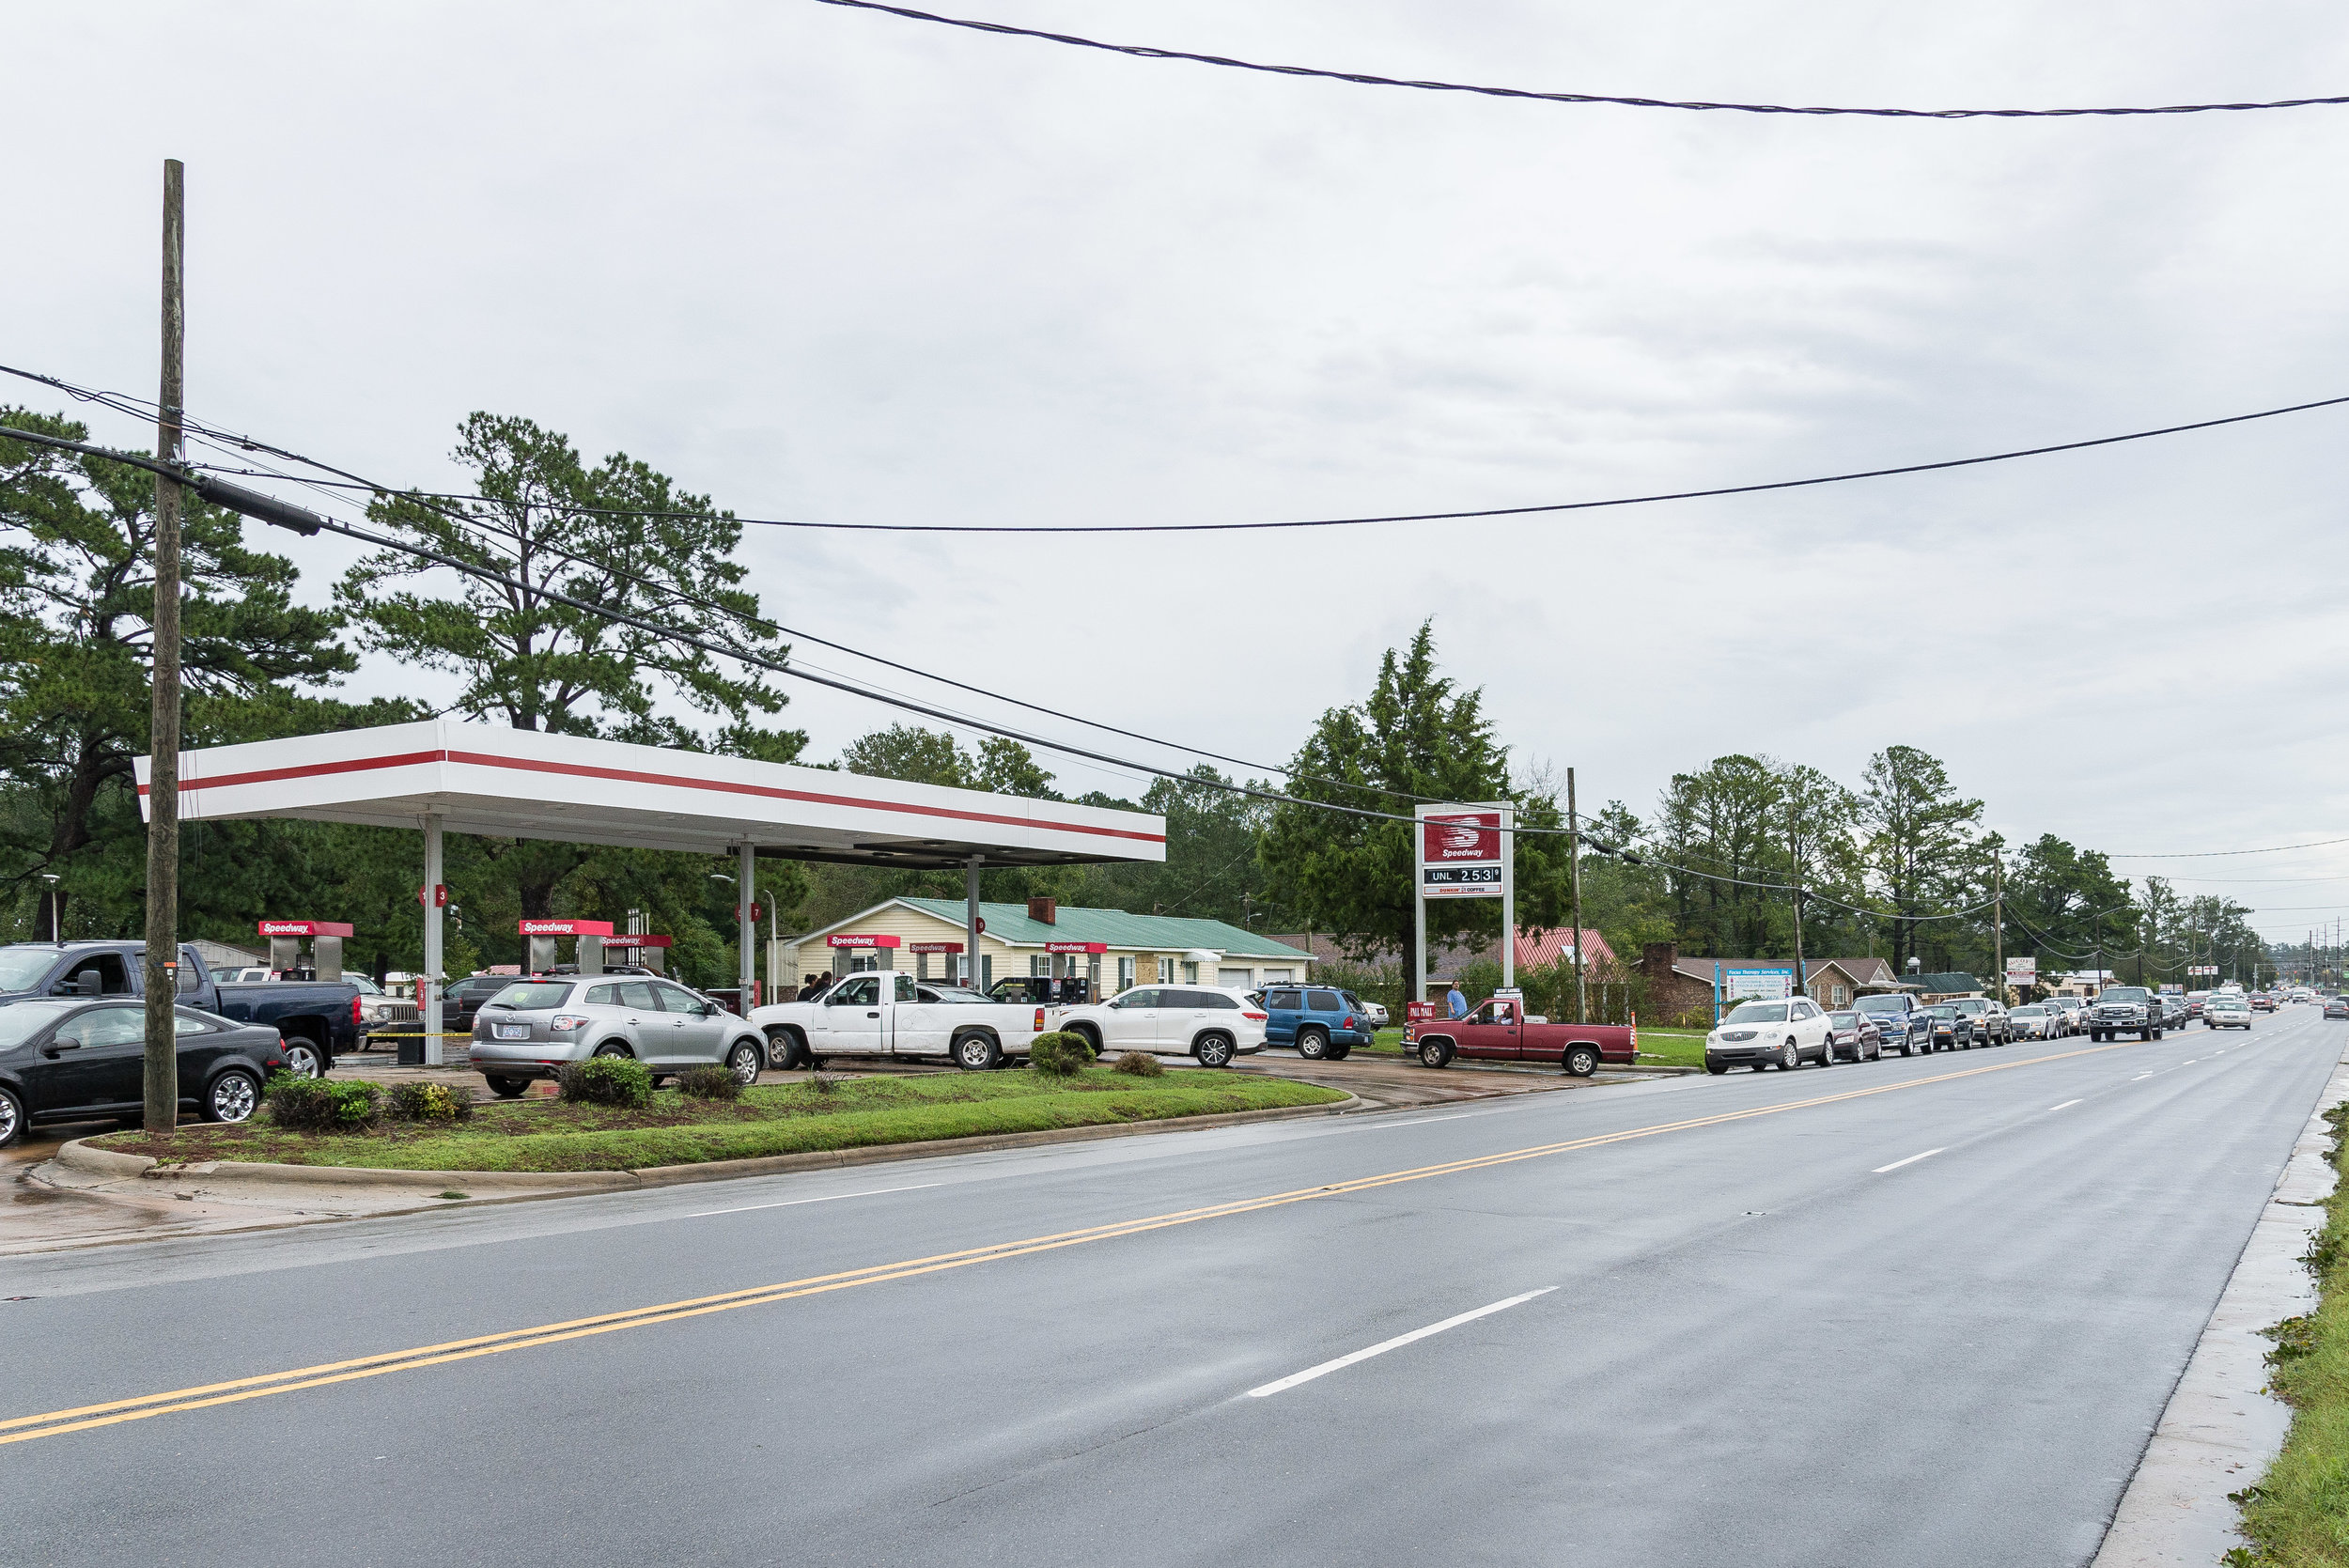 September 16, 2018, New Bern, NC- A line over a half mile long is seen at a Speedway Gas station. The only station in the area that had both fuel and power.